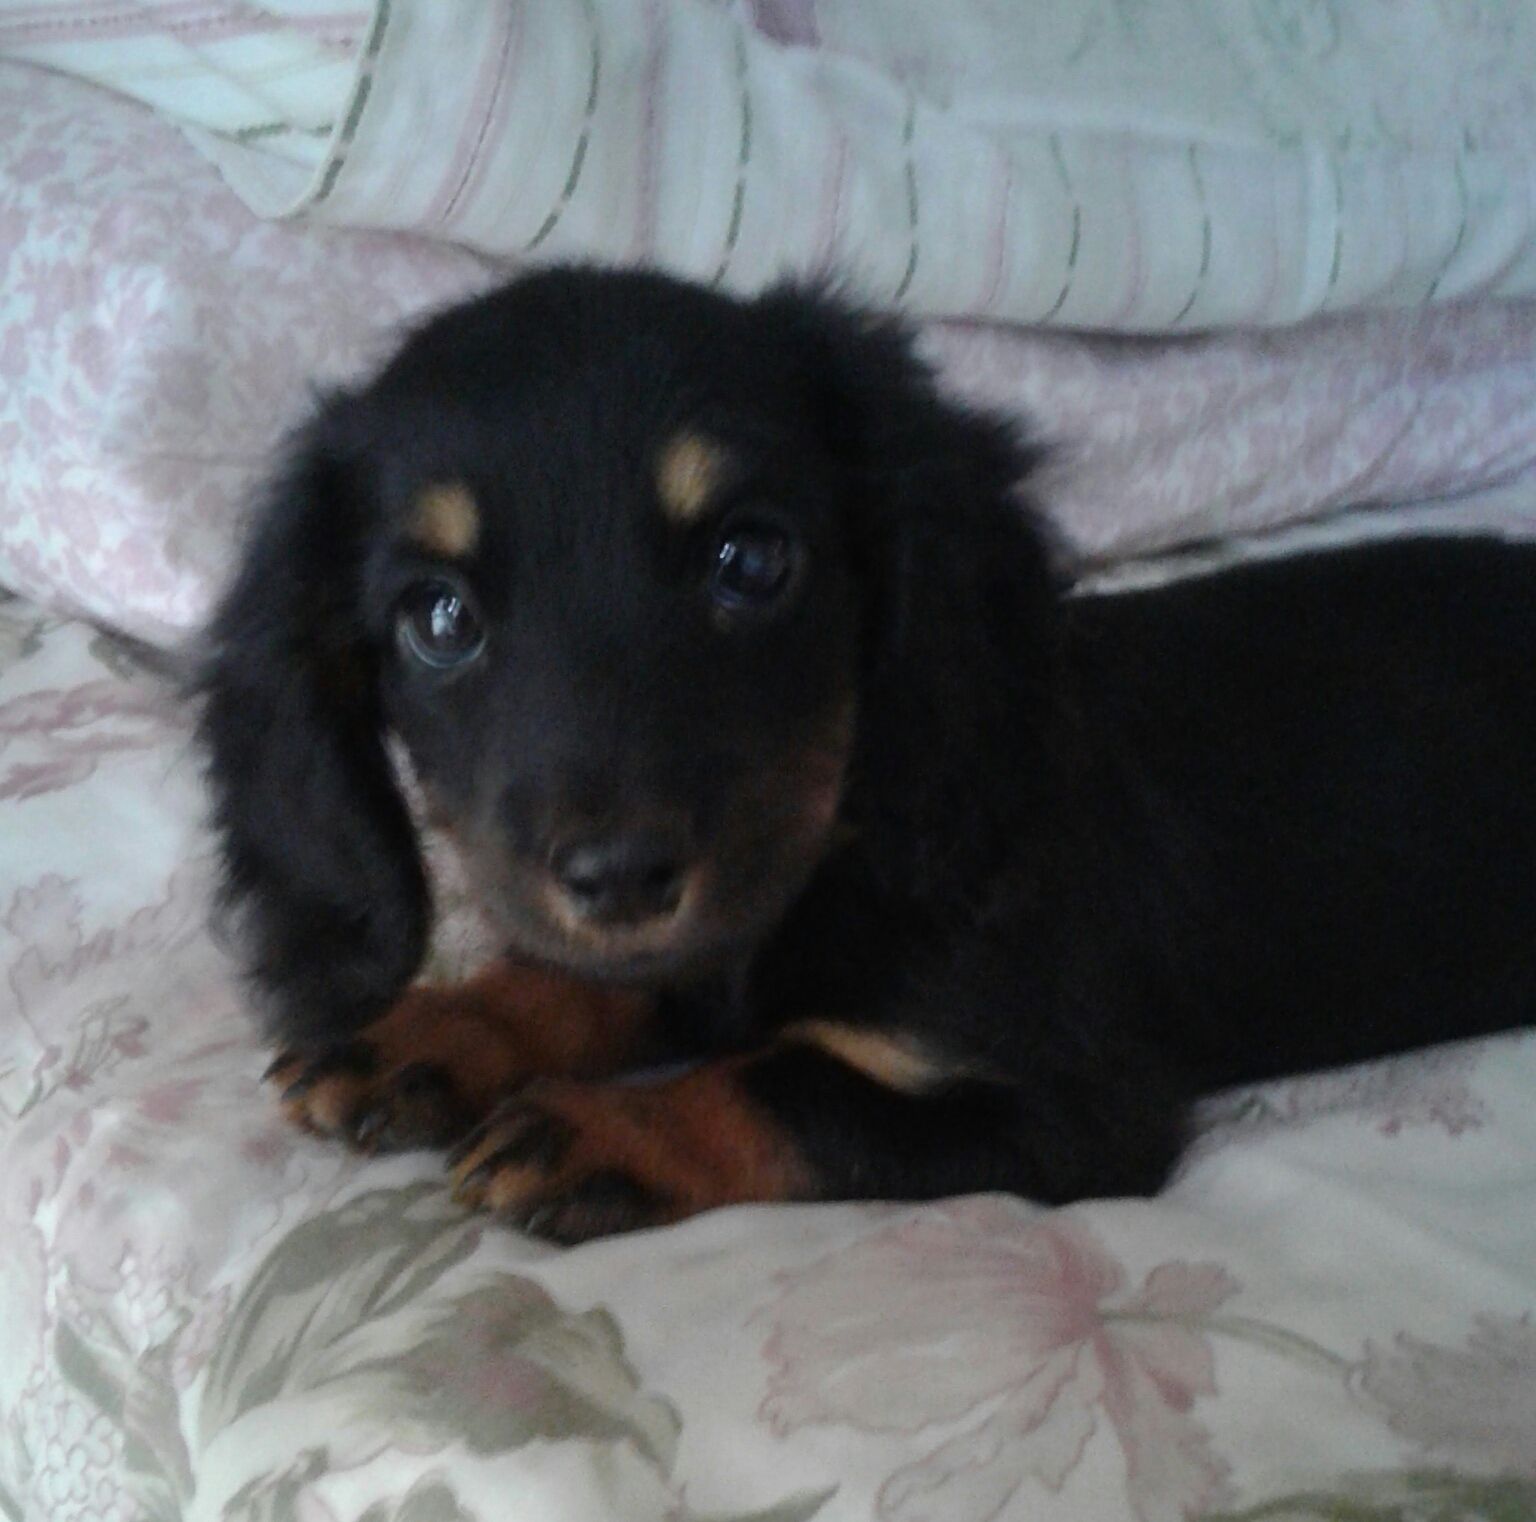 Dachshund Black and Tan Puppy Longhair